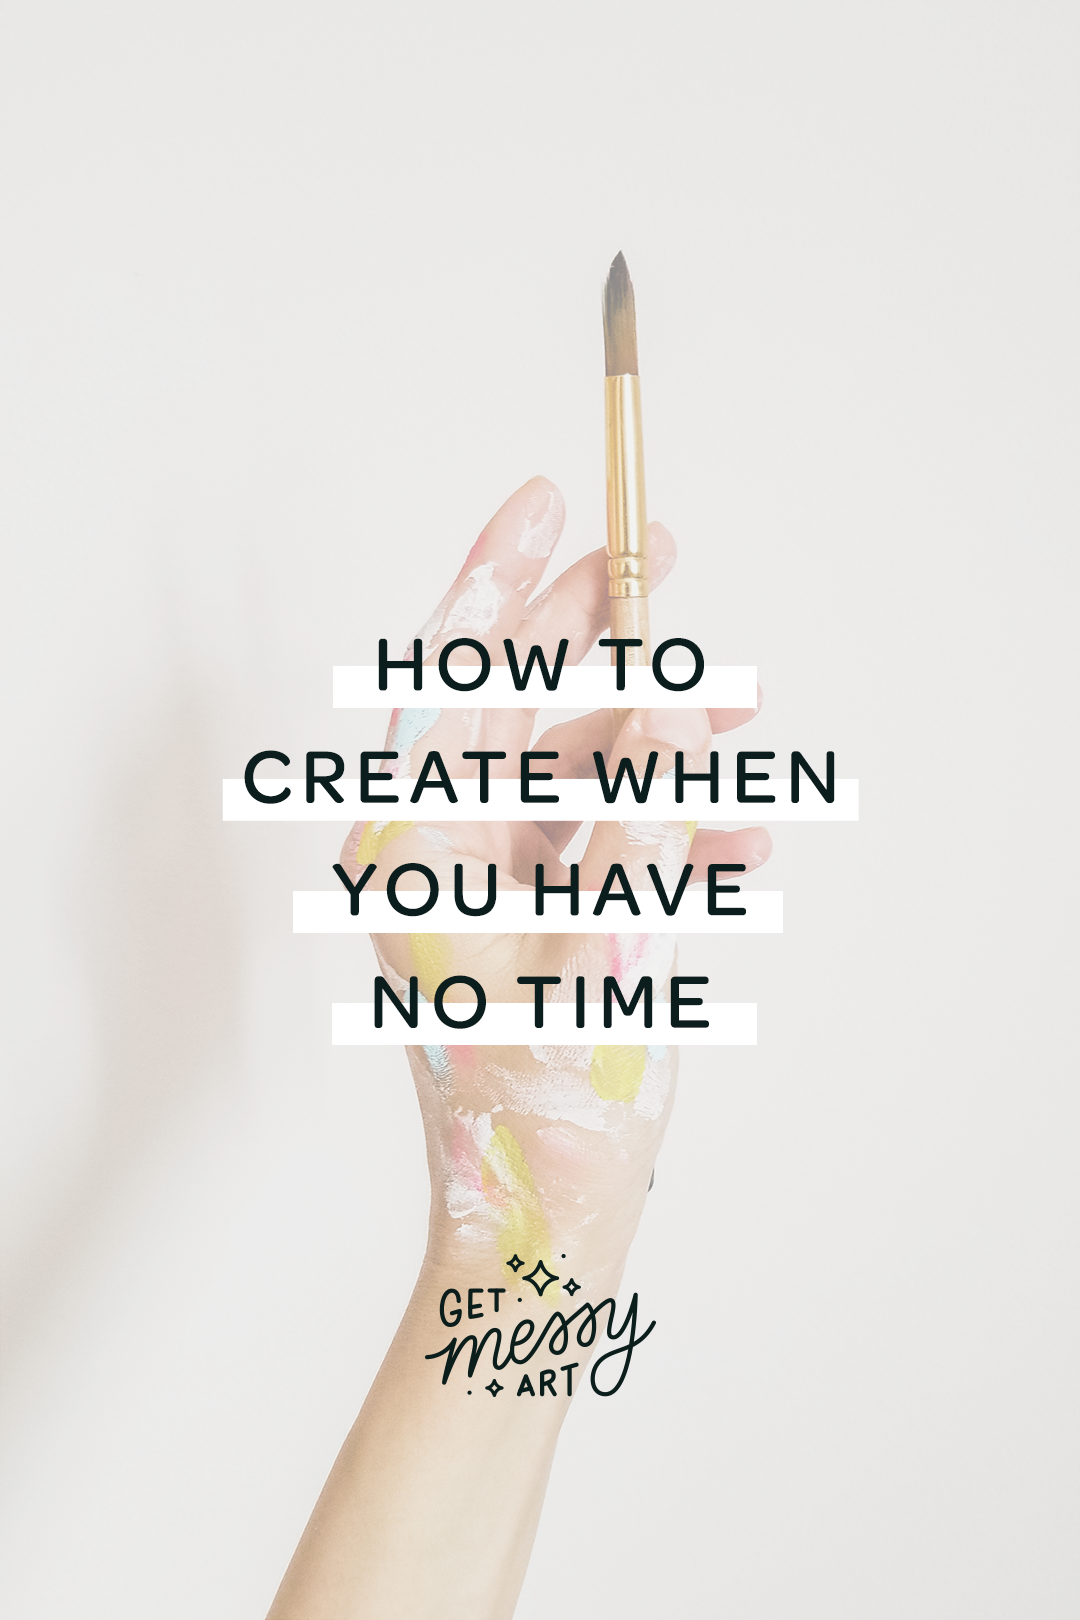 How to make art when you have no time